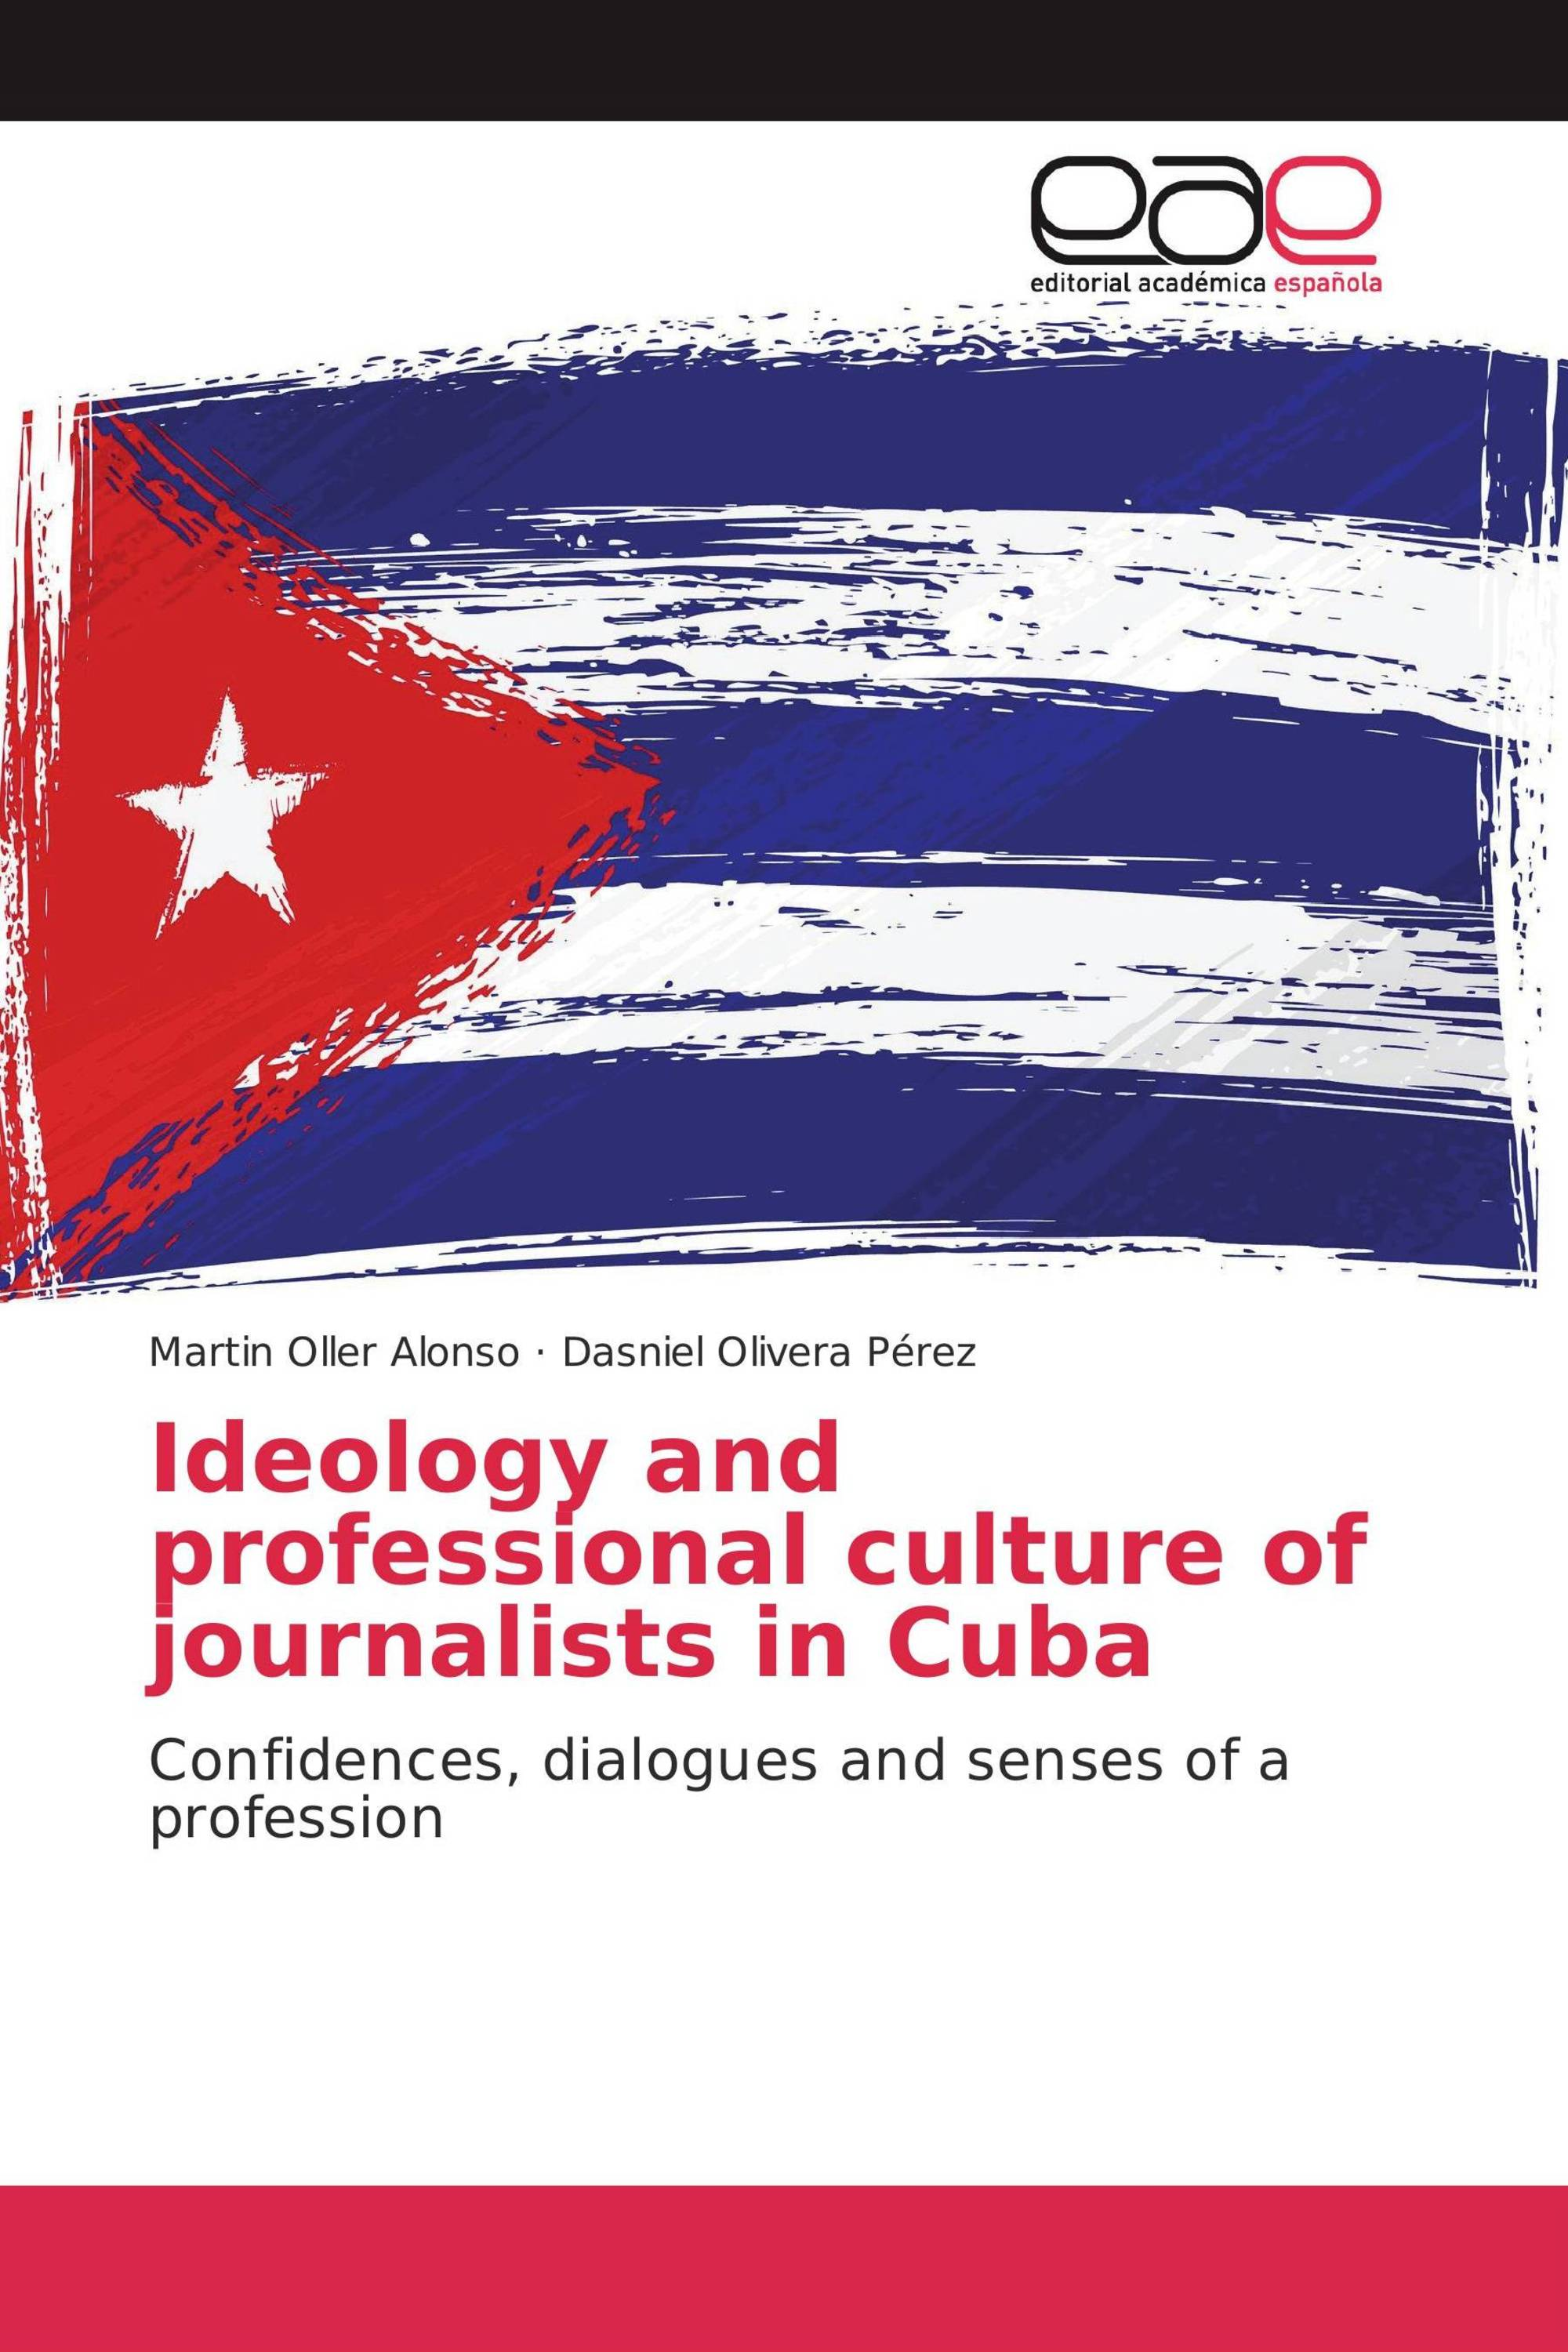 Ideology and professional culture of journalists in Cuba